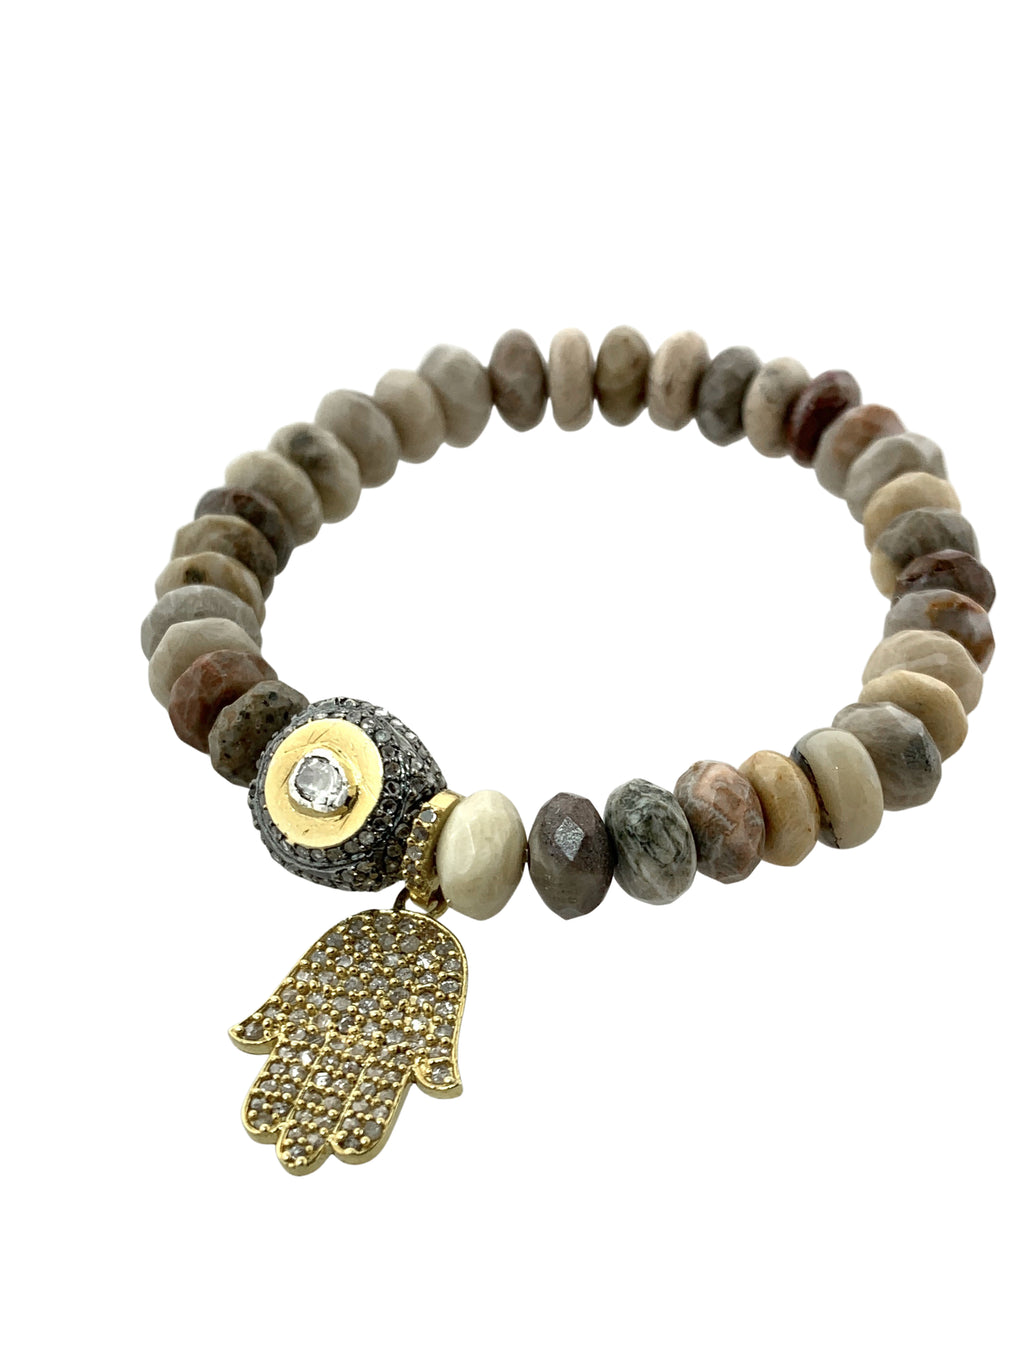 Pave Diamond Hamsa in Brass with Diamond Bead set in Sterling Silver and Brass on Faceted Jasper